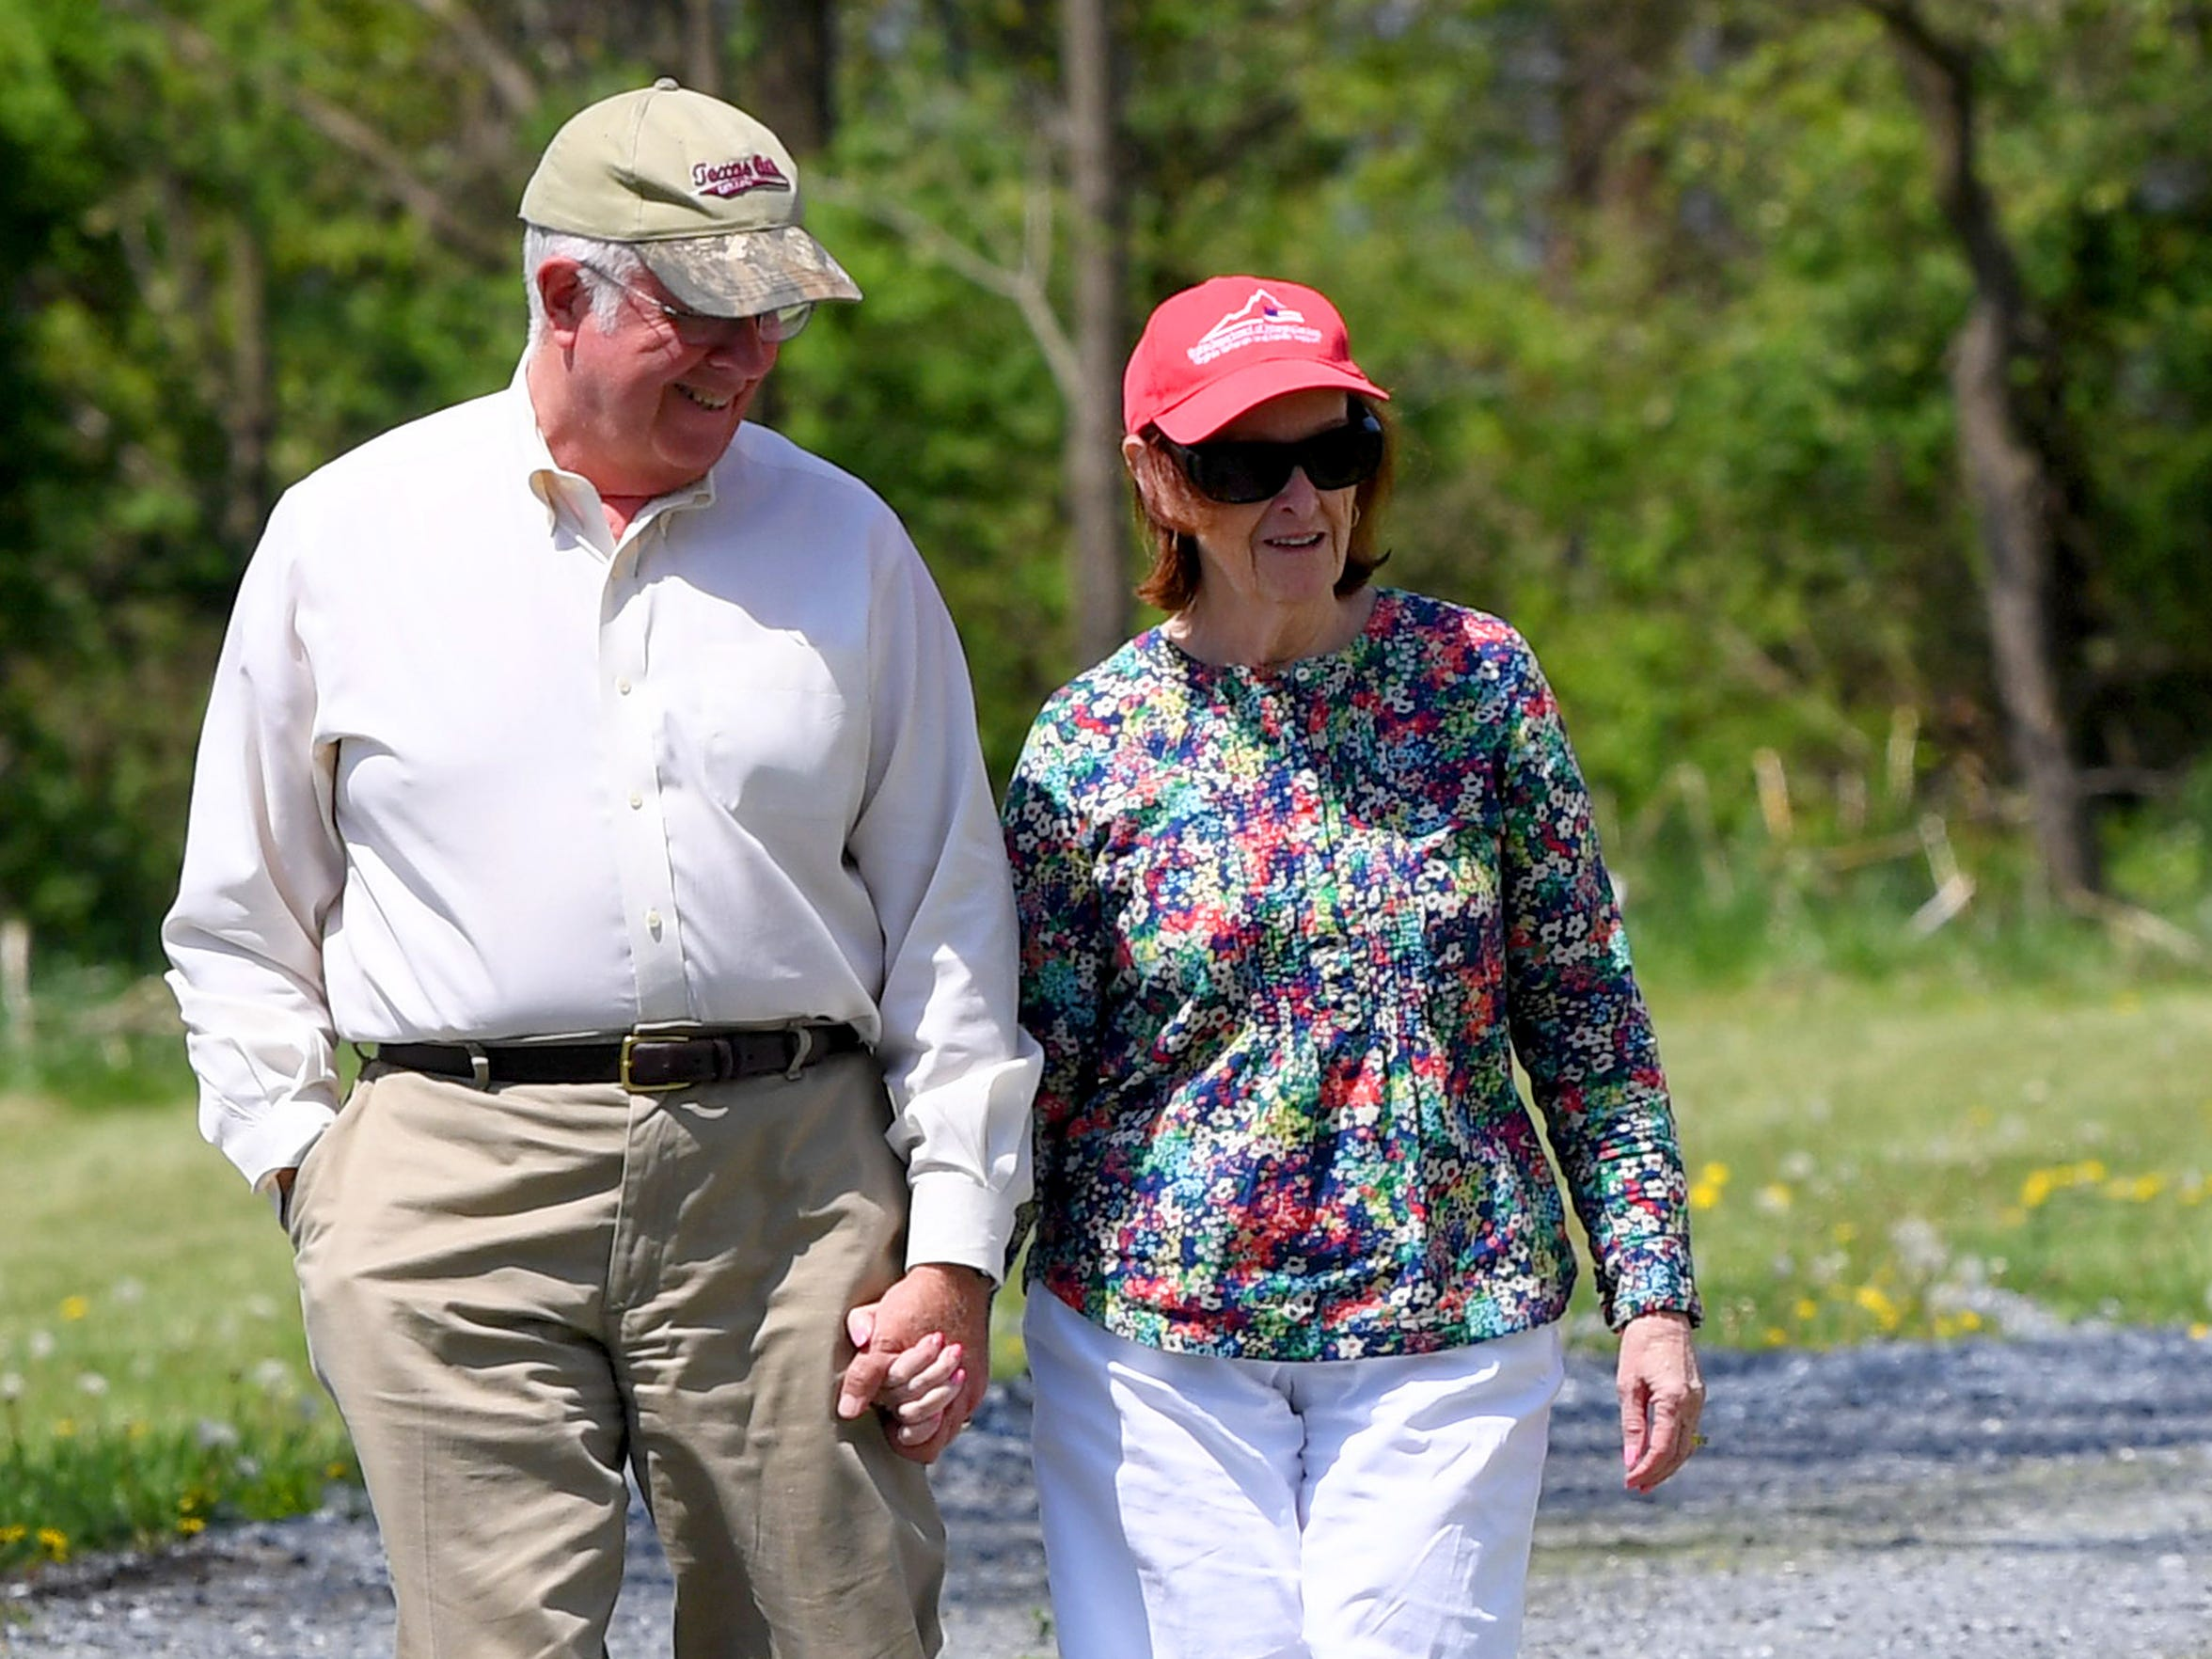 Patrick and Carol Webb hold hands as they walk together on Thursday, May 3, 2018. The husband and wife like to go walking at least 3 times each week. Carol was diagnosed with Alzheimer's disease in November 2016.